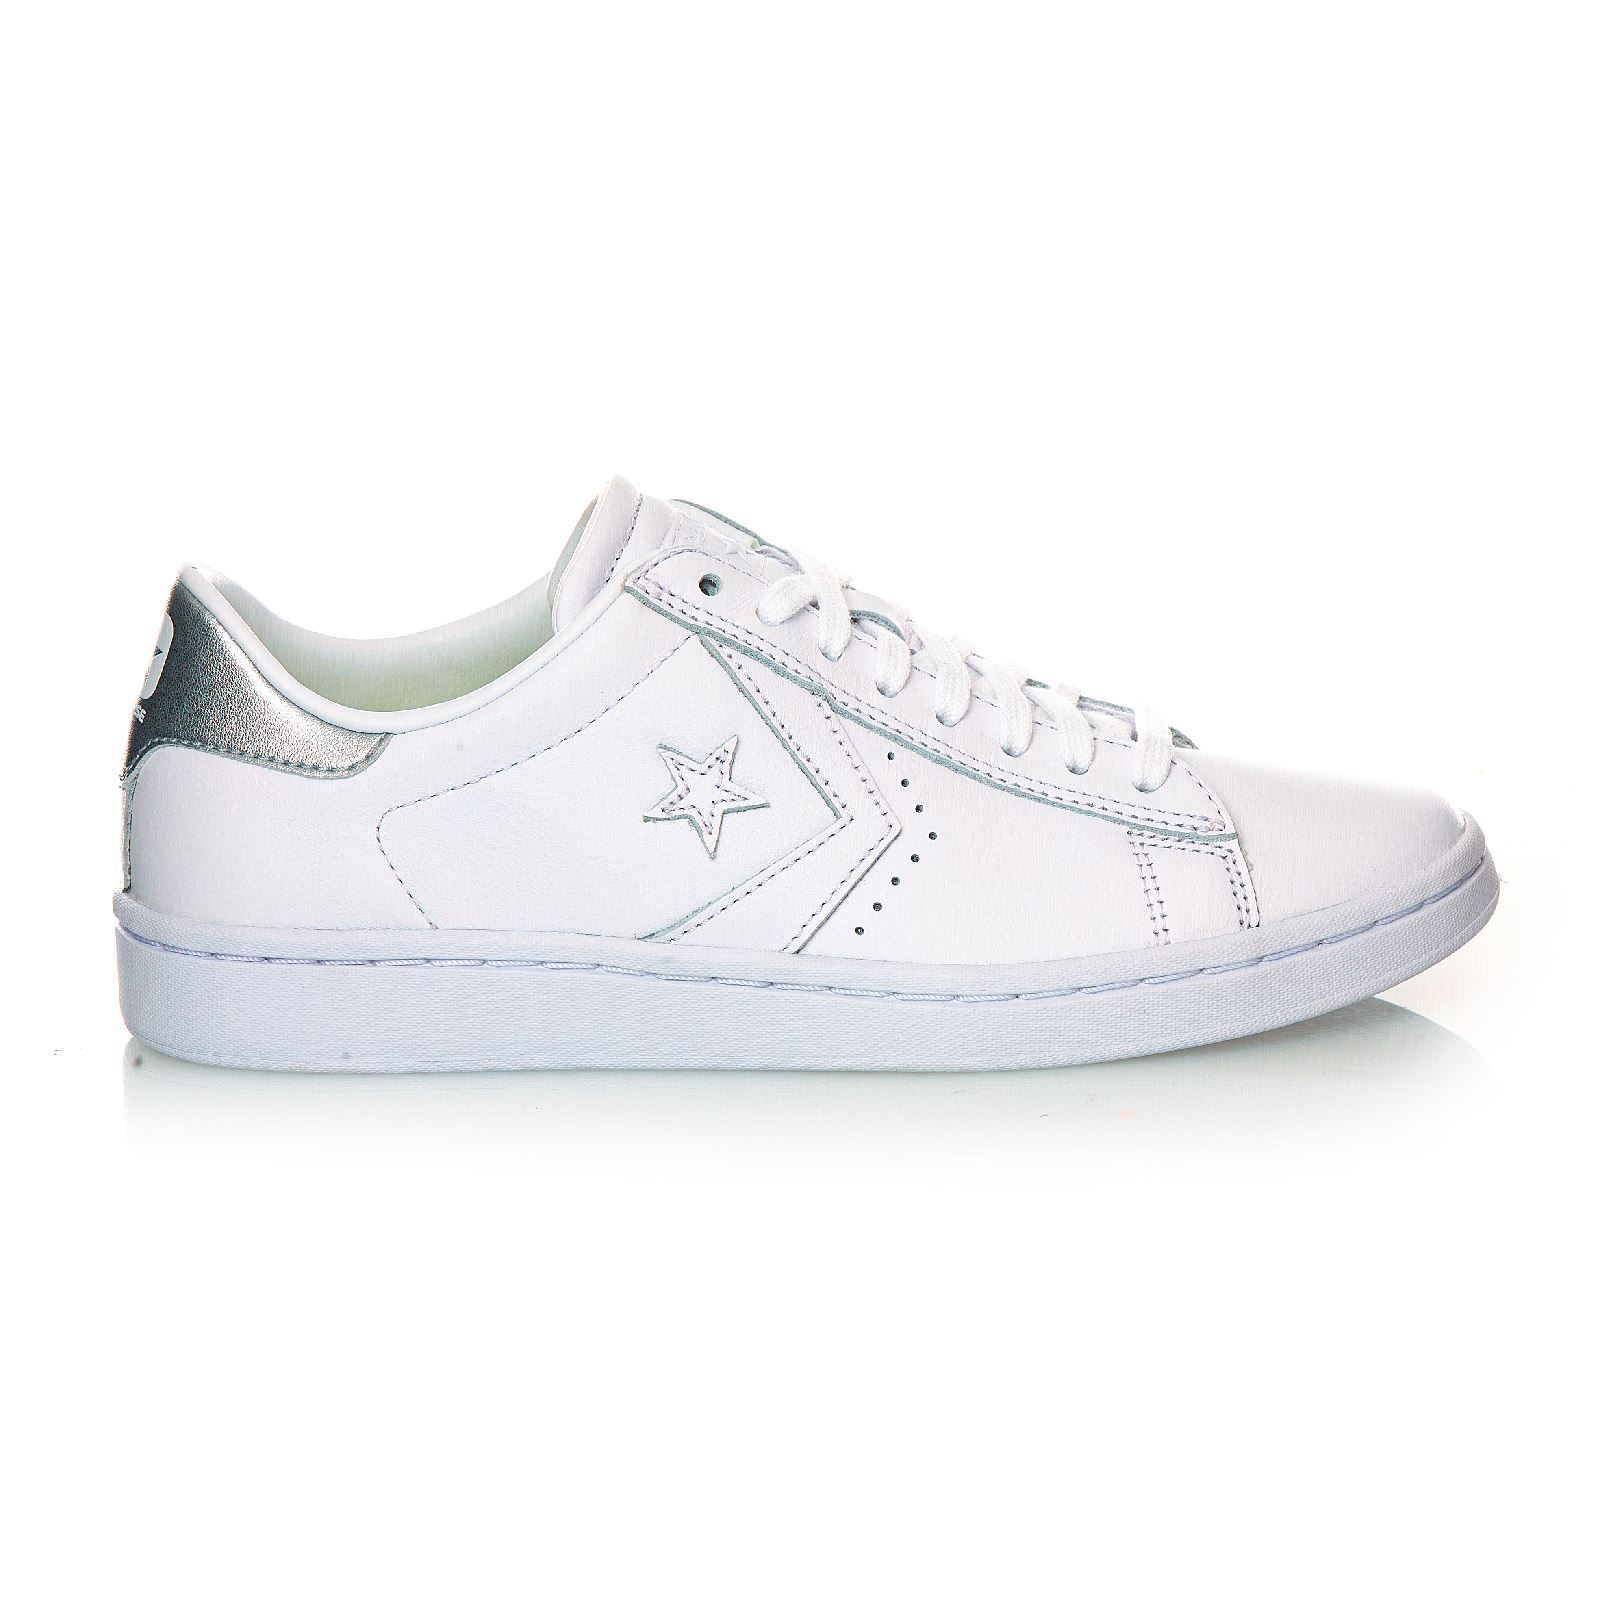 Chaussures Converse Pro Leather Fashion femme B3fBXtKR